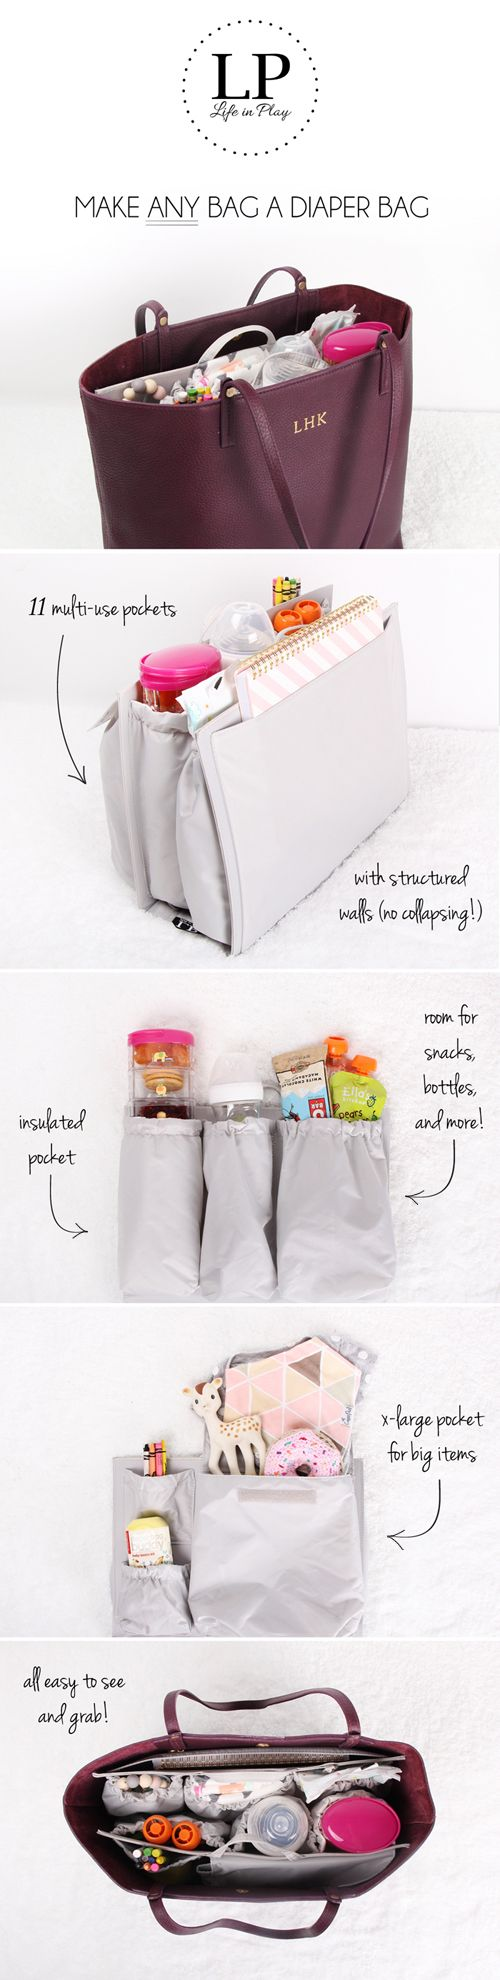 Make any bag a diaper bag with ToteSavvy – the multi-functional organizer insert.